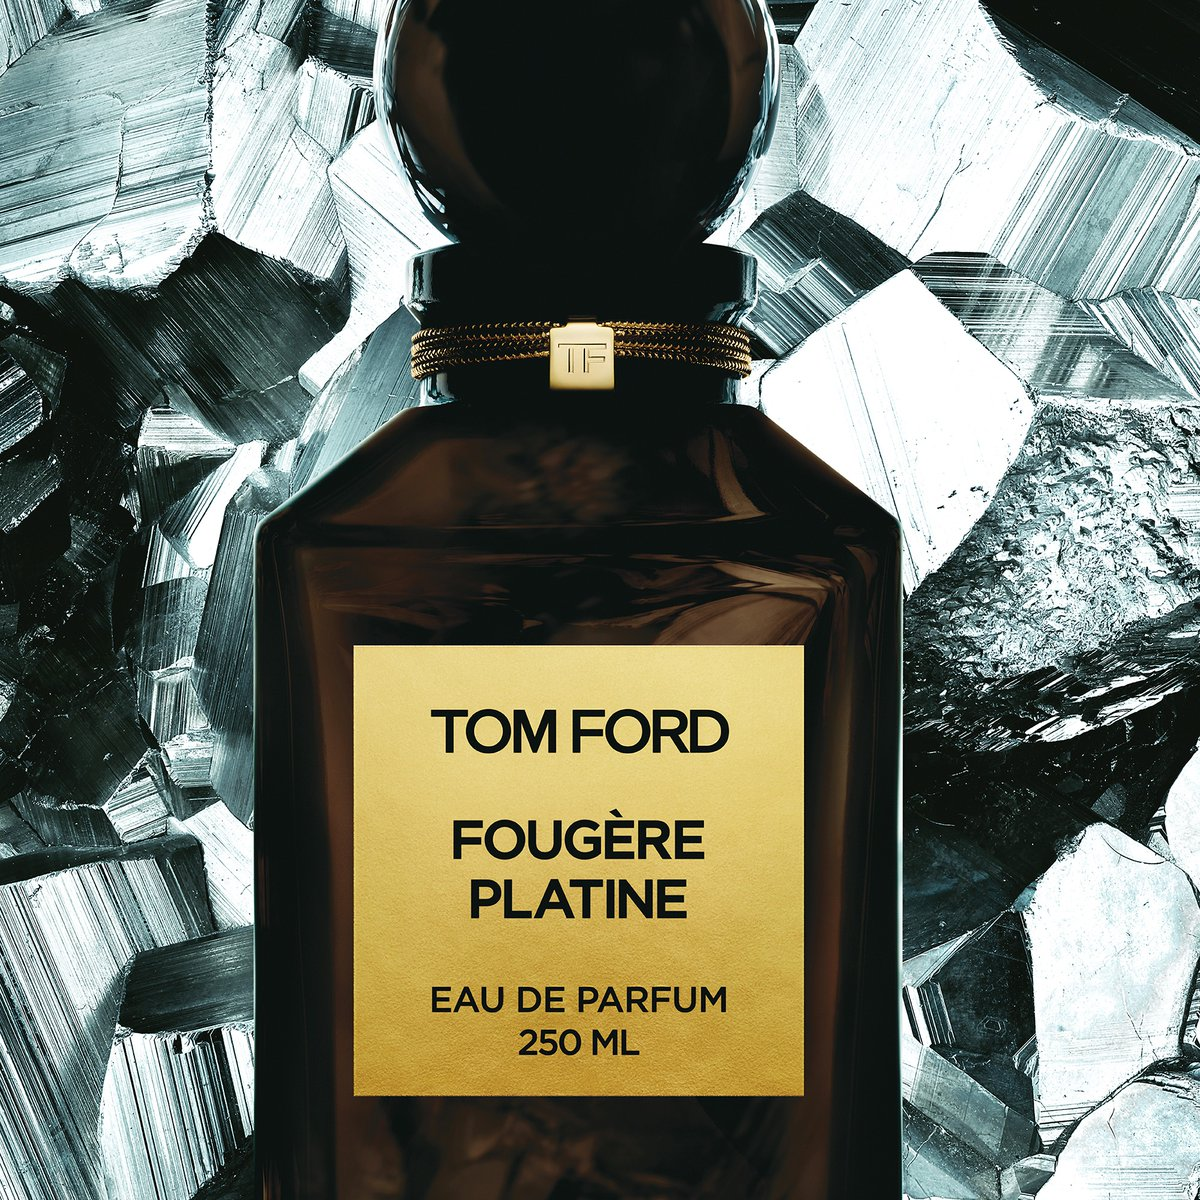 Tom Ford Fougère Platine